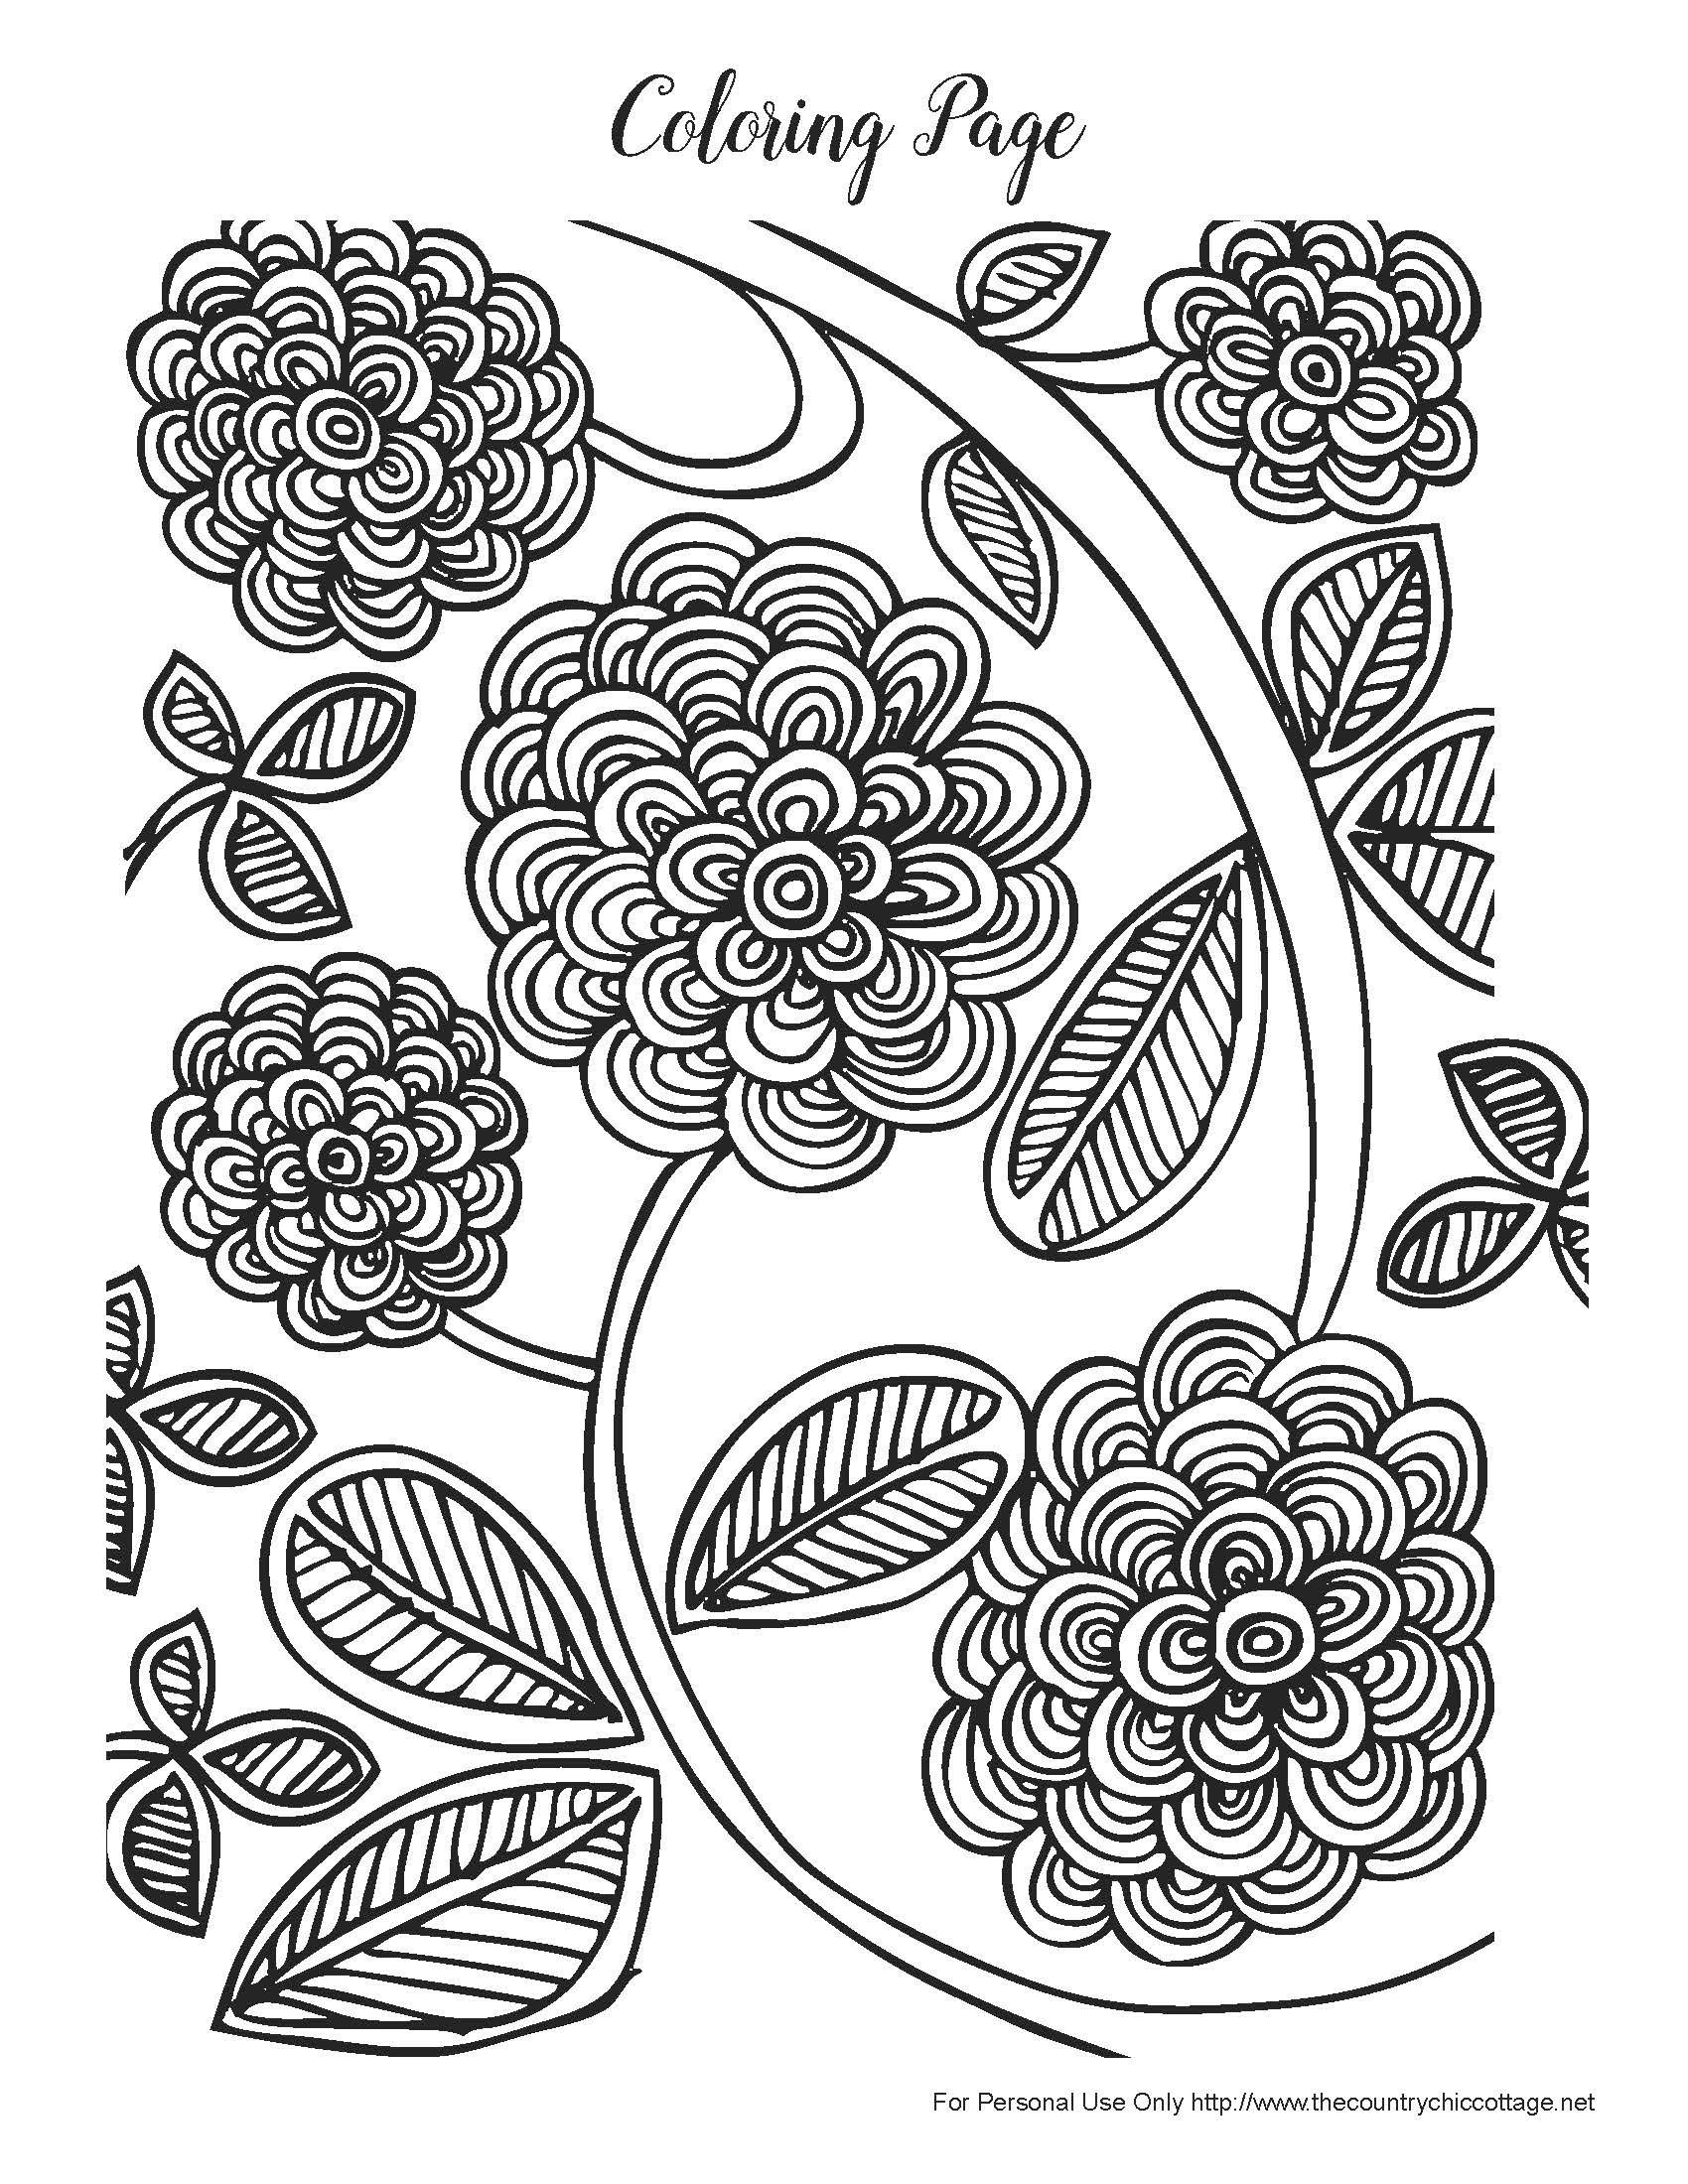 Free Spring Coloring Pages For Adults   Products I Love   Spring - Free Printable Spring Coloring Pages For Adults